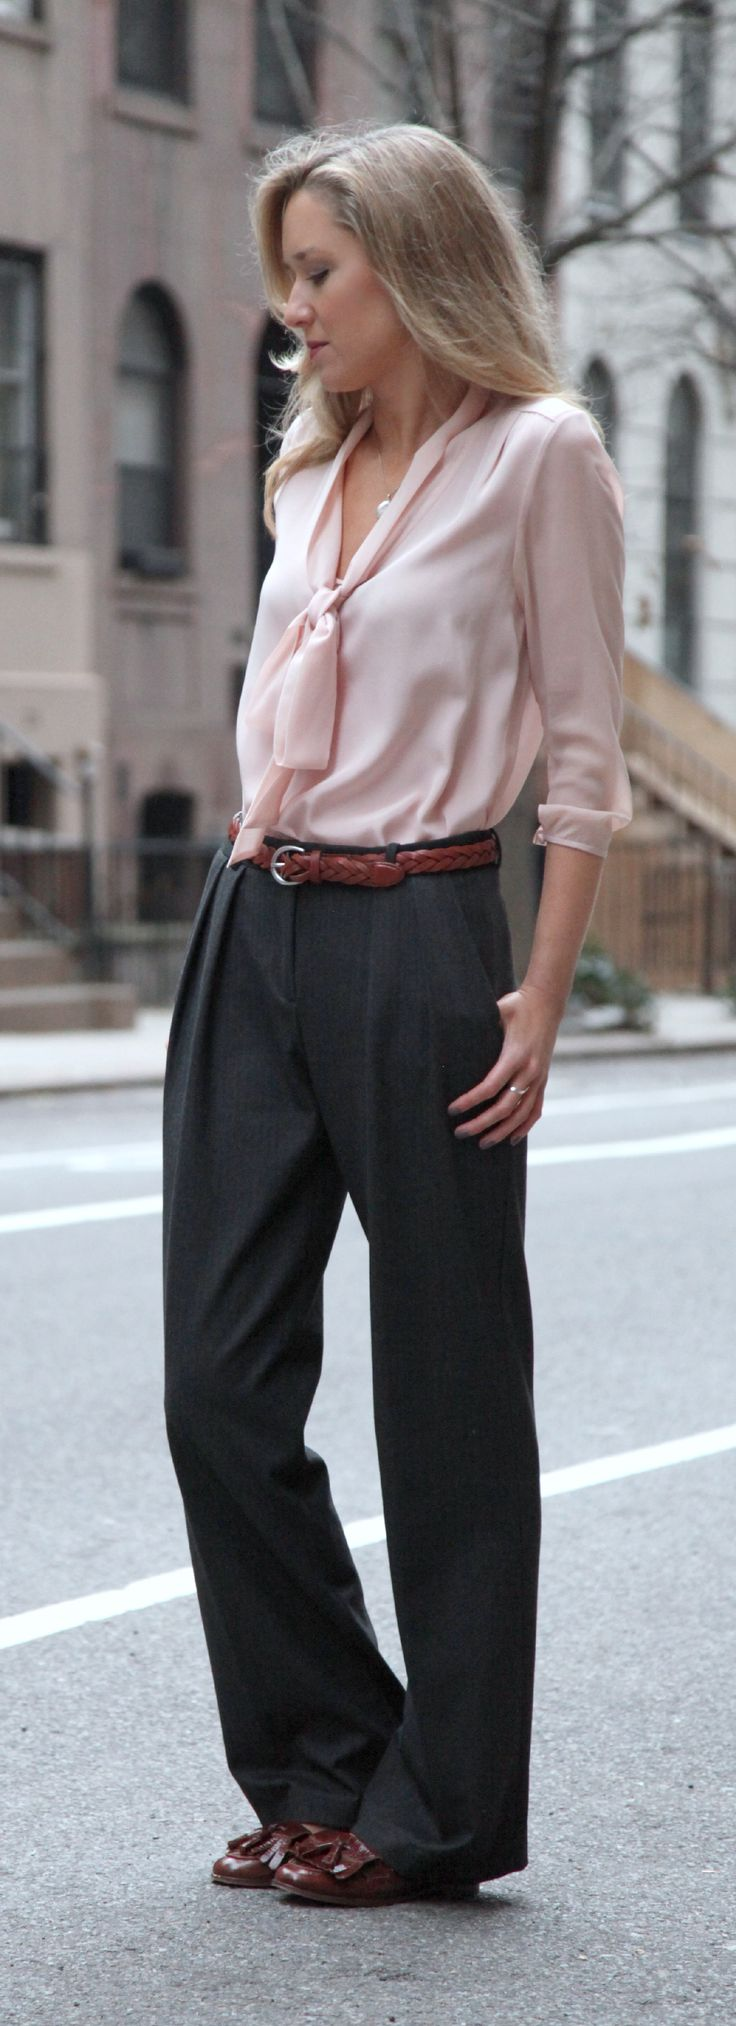 The Classy Cubicle: Wide Leg Trousers and Tie Neck Blouse